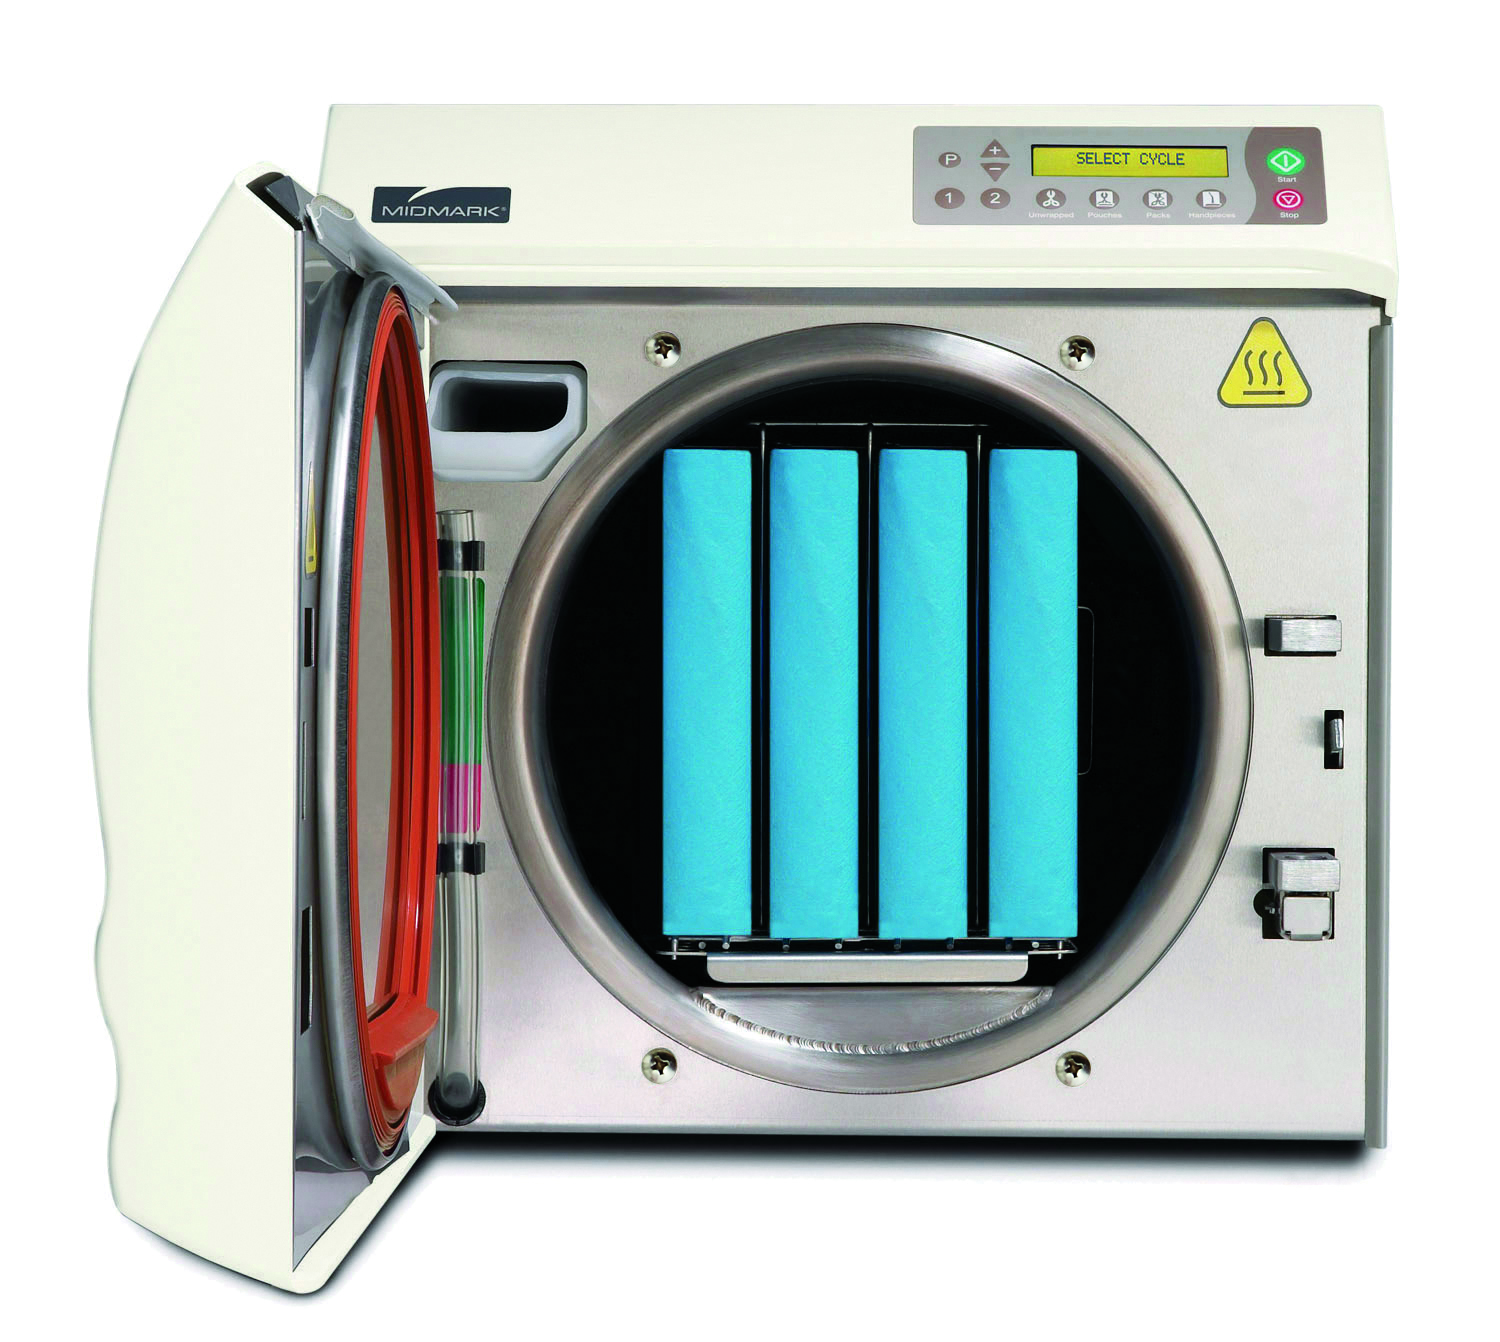 midmark m11 ultraclave automatic sterilizer rh midmark com M11 Ultraclave Automatic Sterilizer Manual Midmark M11 Ultraclave Troubleshooting